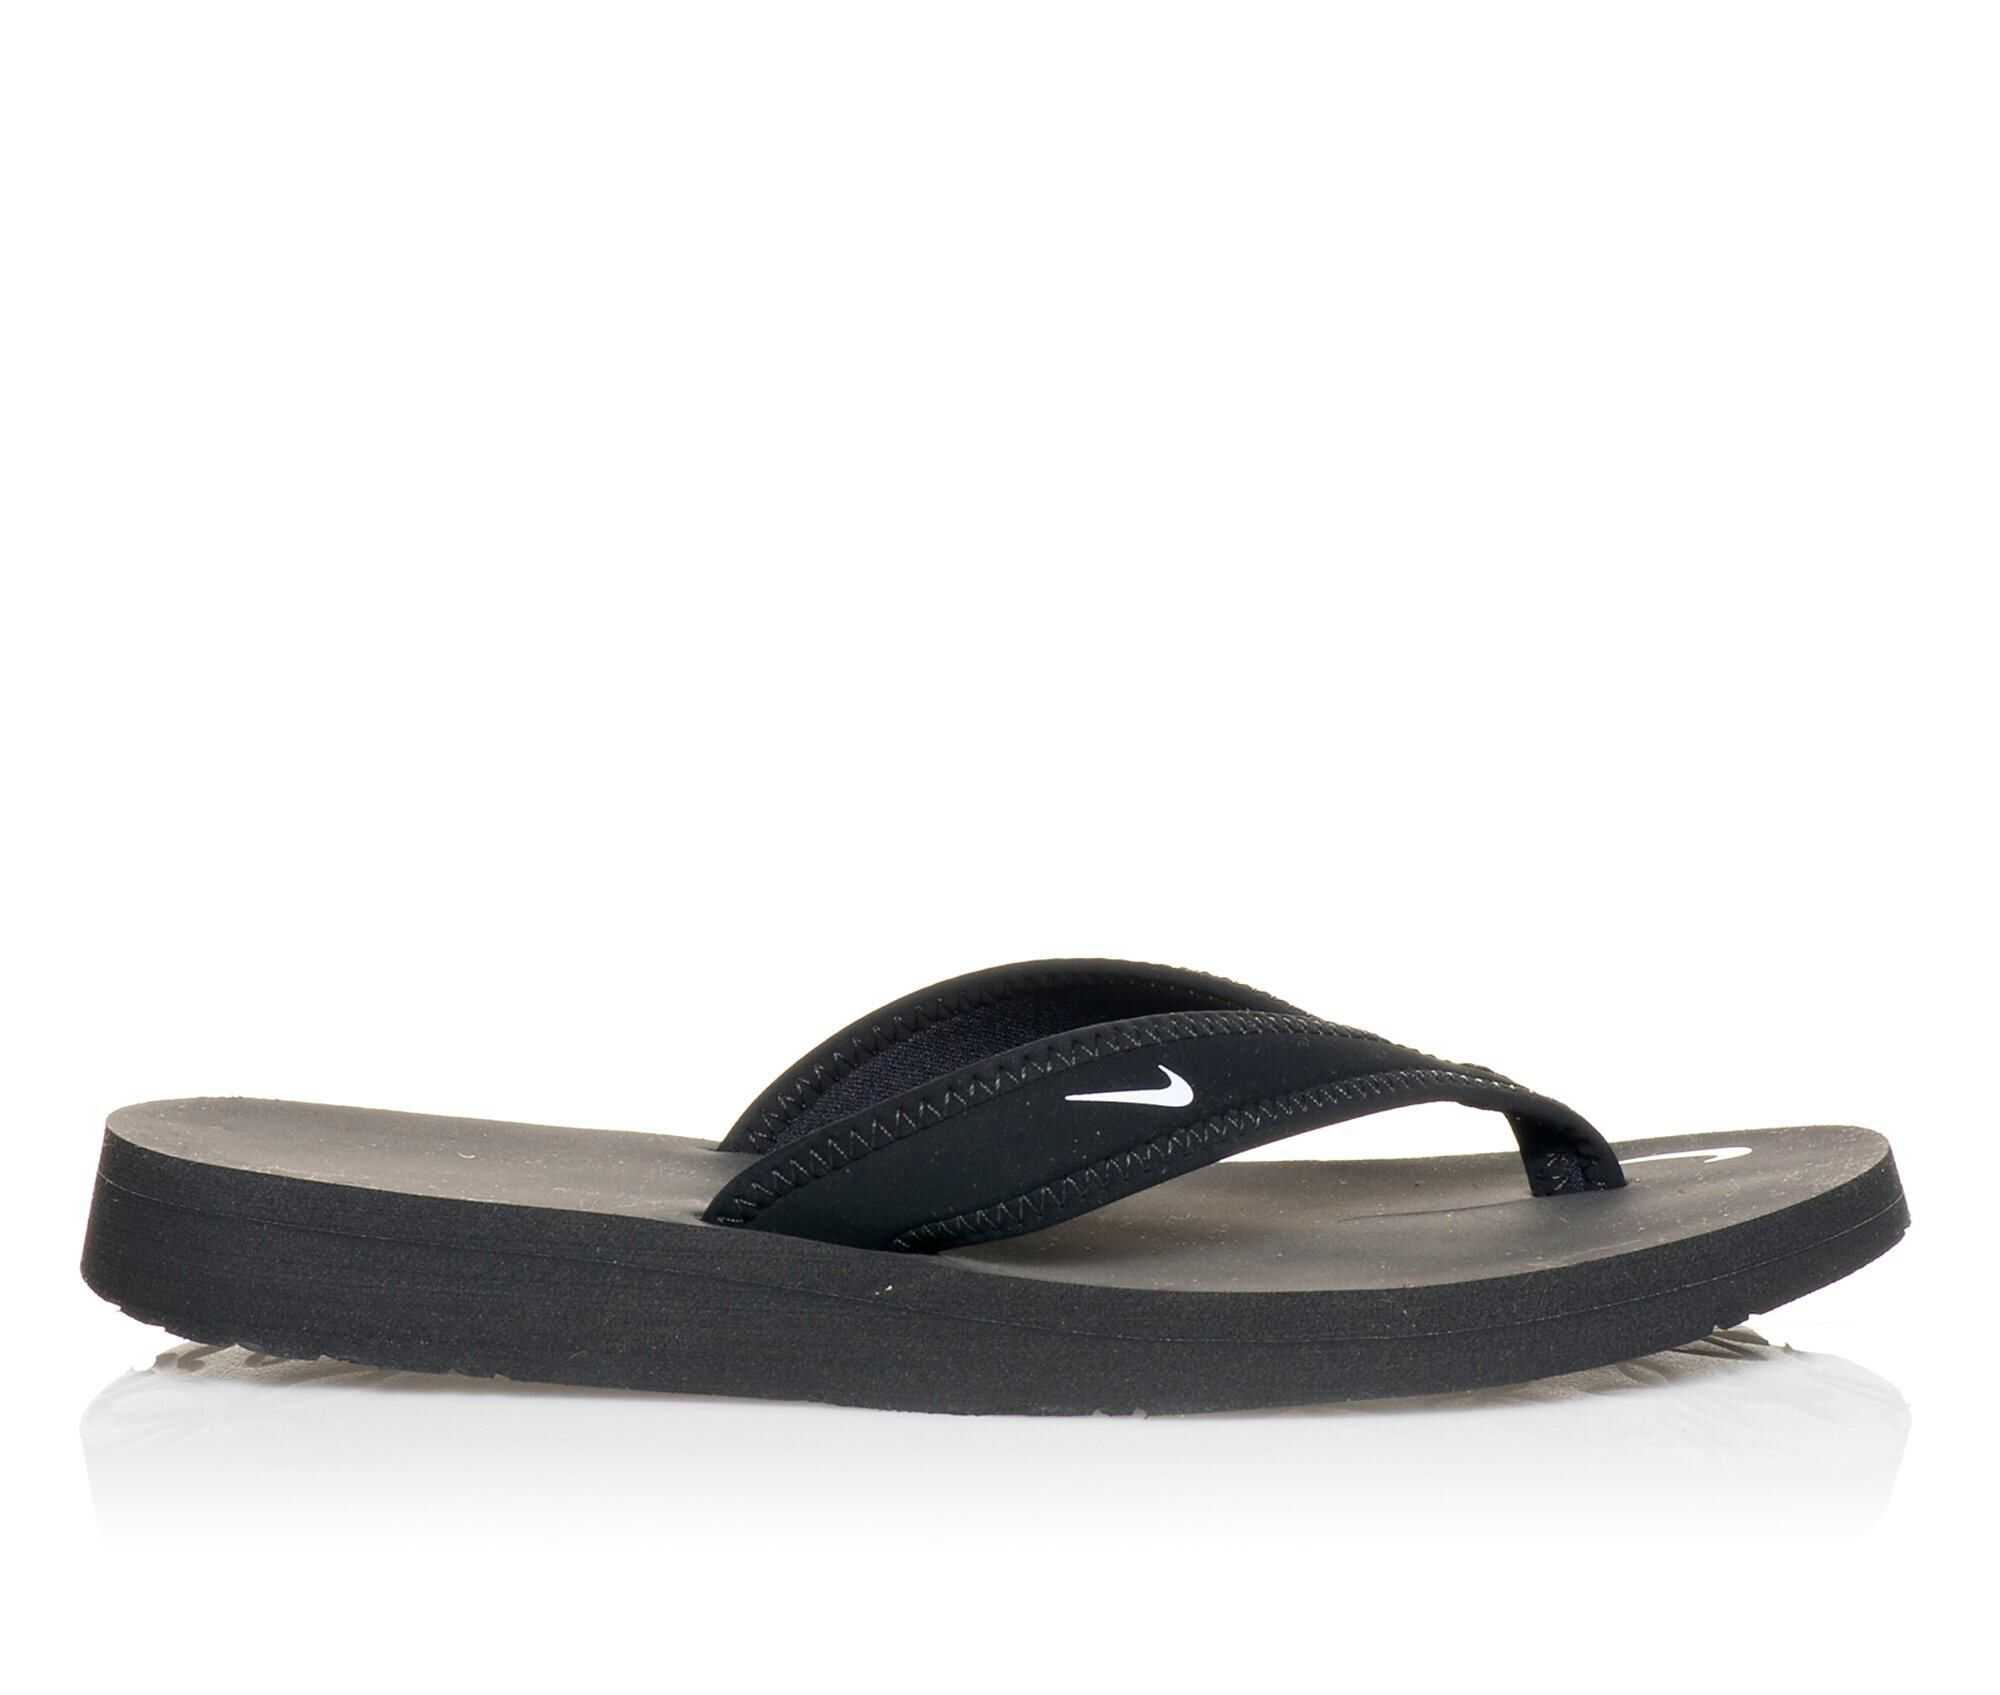 32536a6fef3c Buy nike double strap sandals